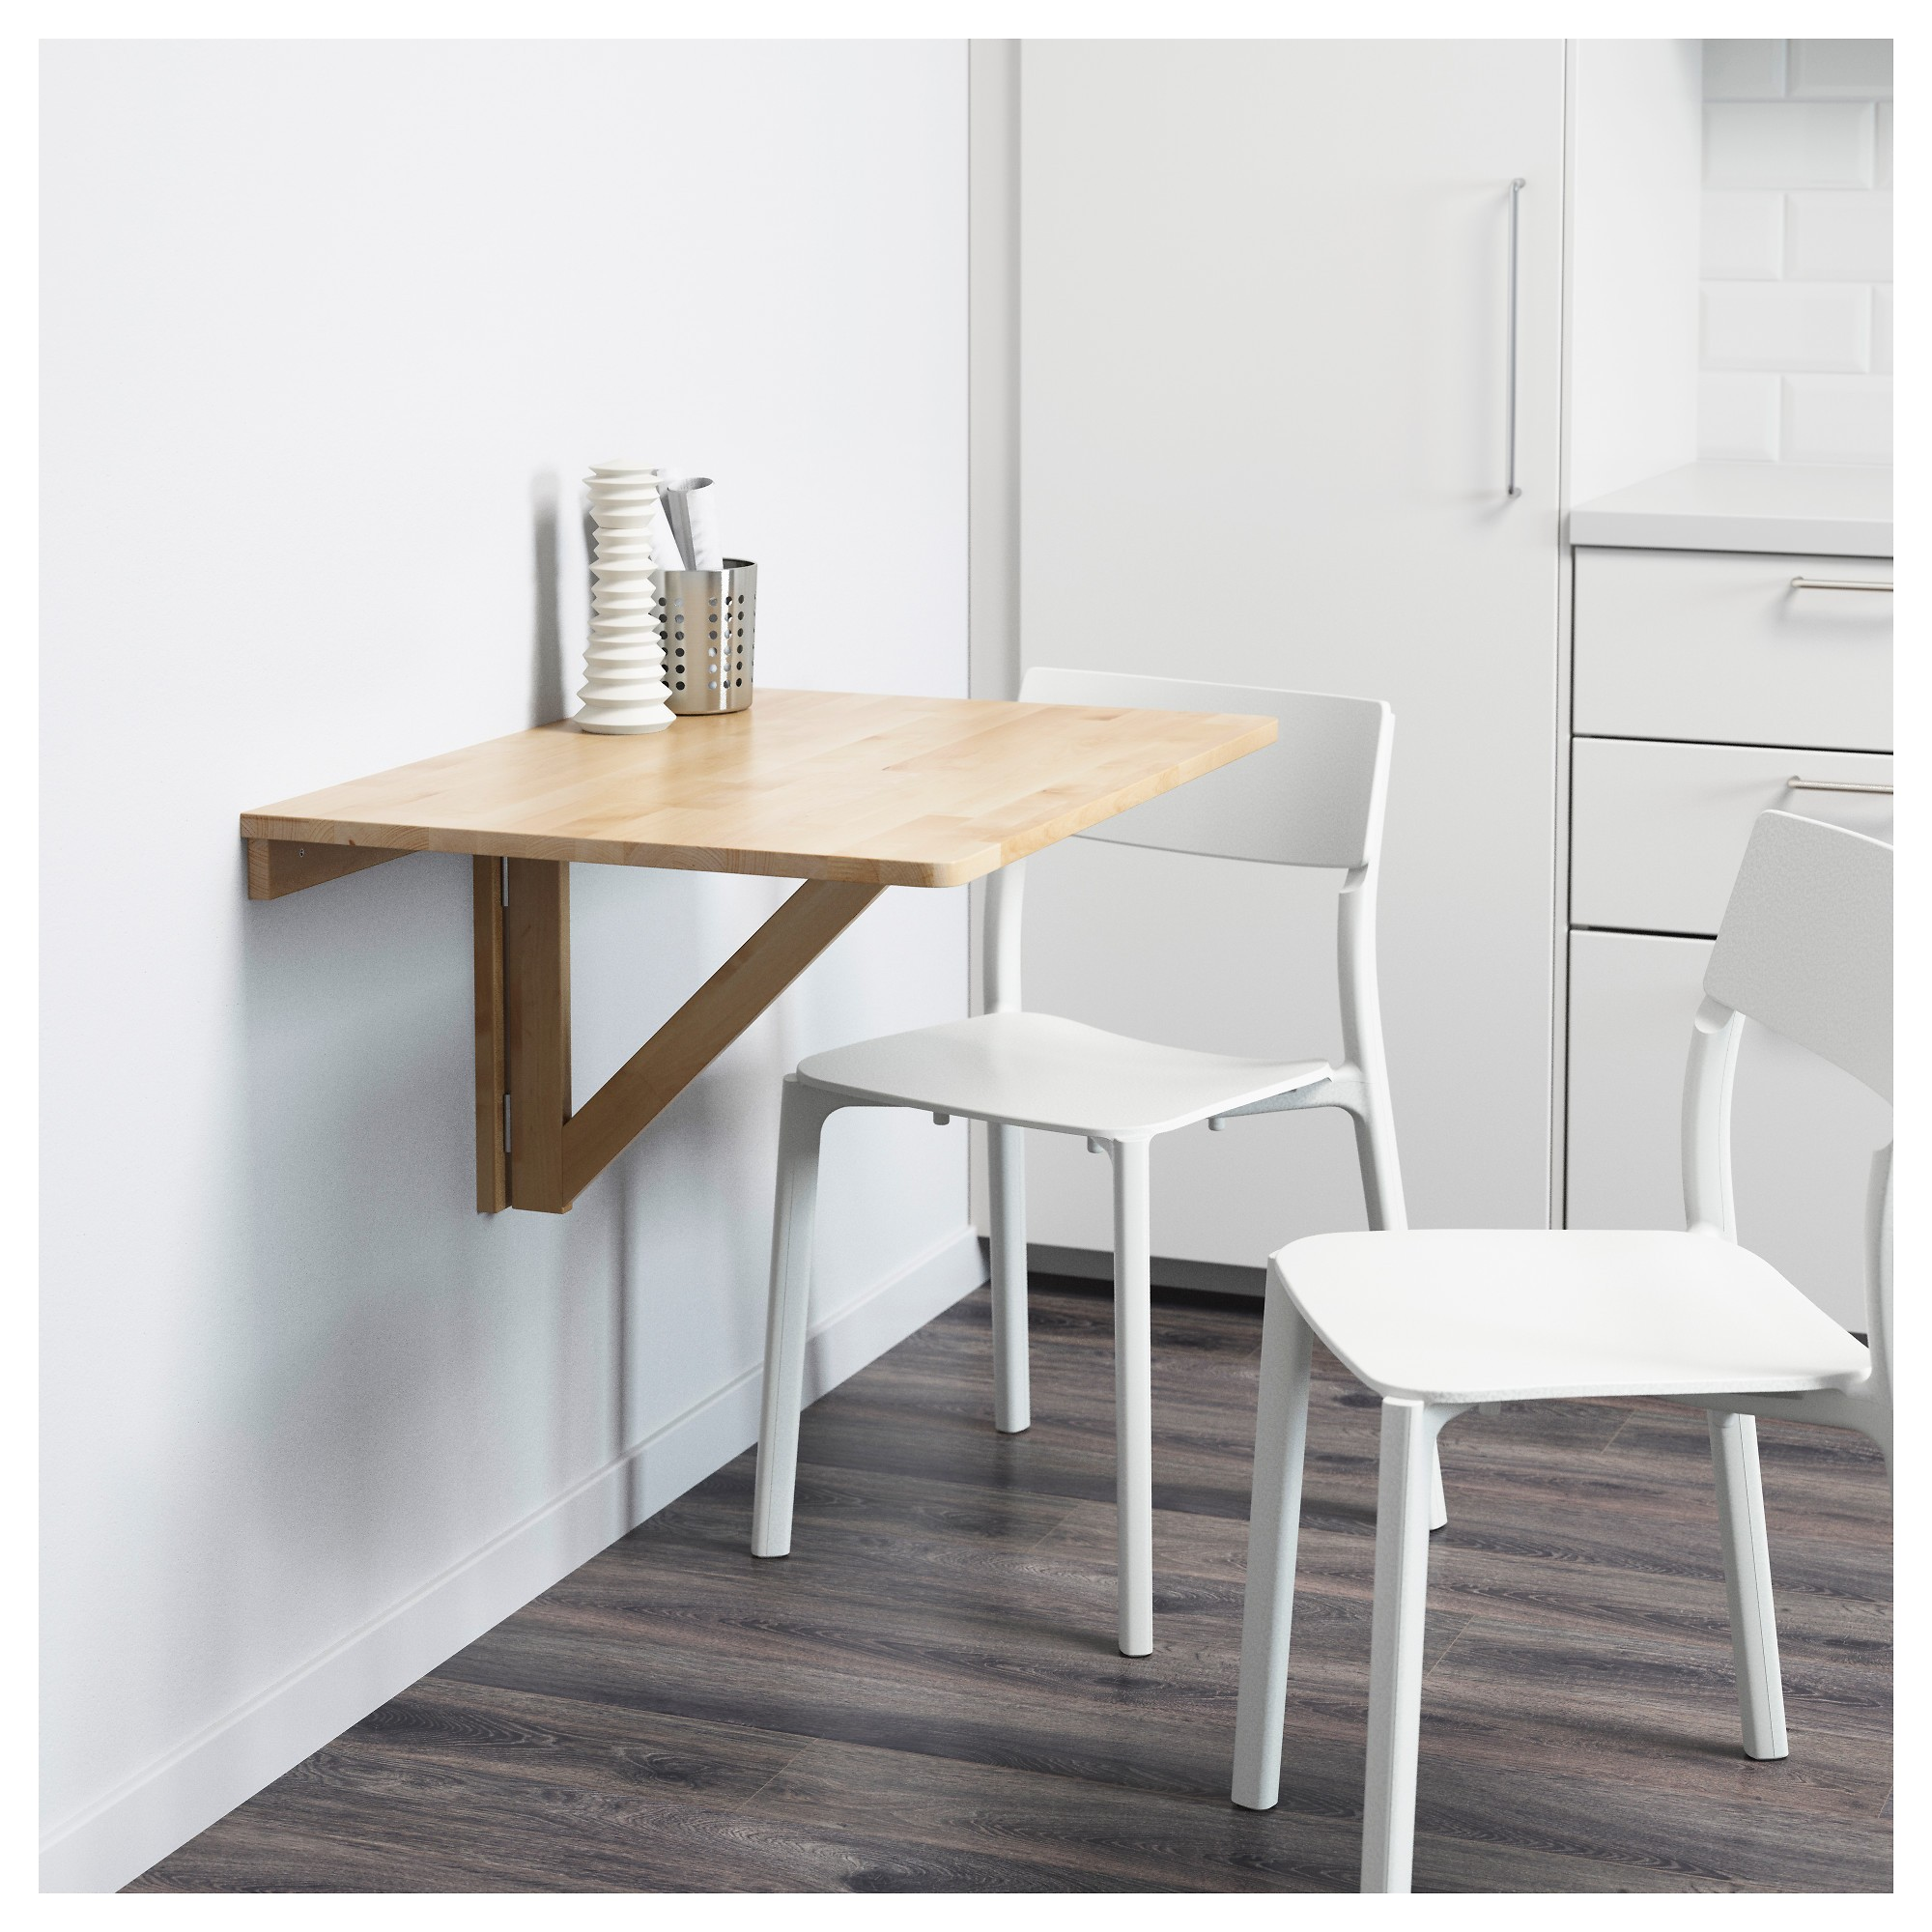 Table cuisine pliante murale ikea cuisine id es de for Table cuisine pliante ikea